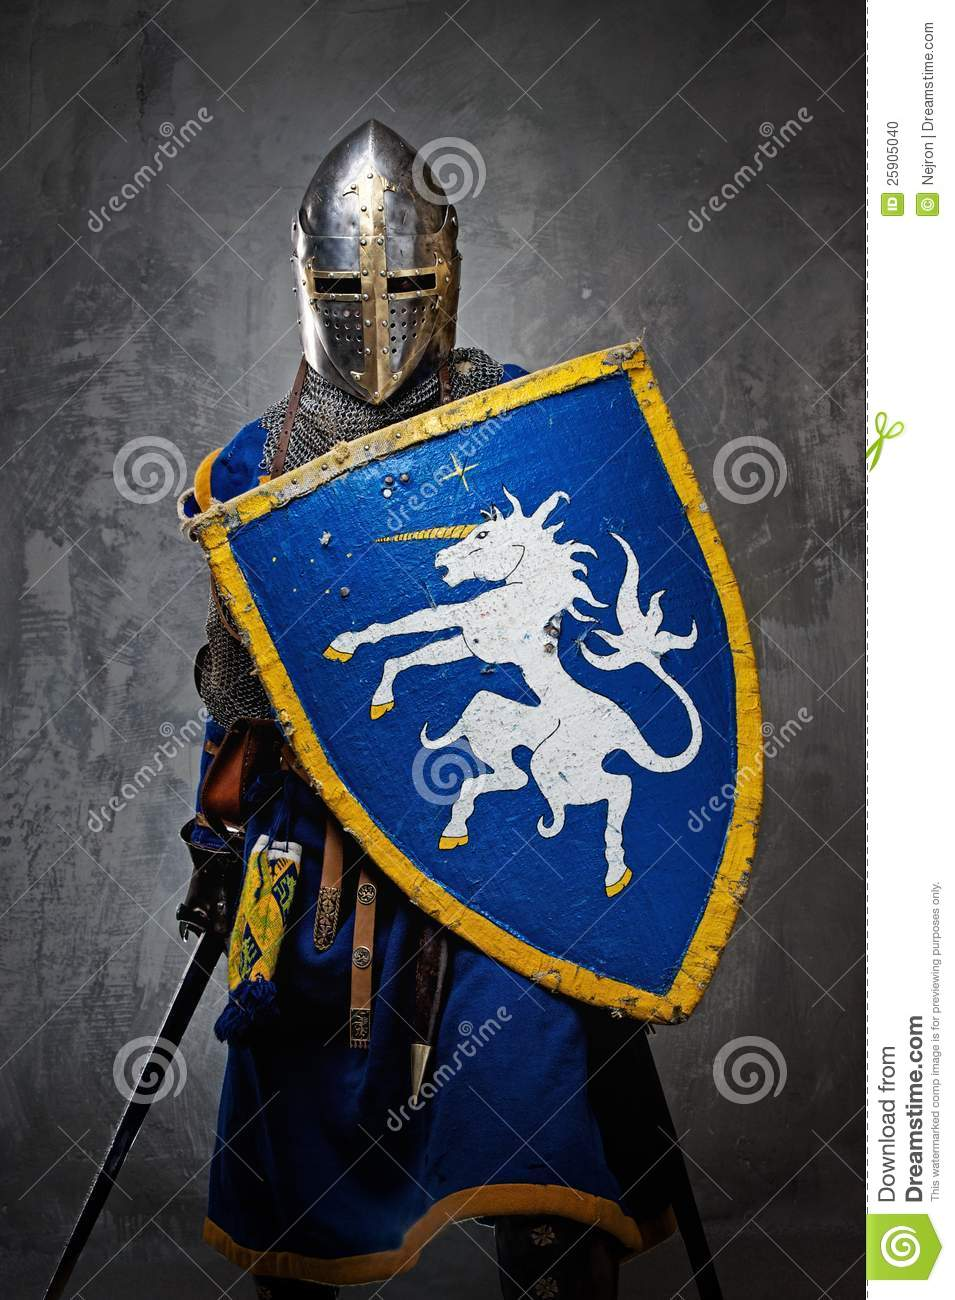 Knights Coat Of Arms Wallpaper